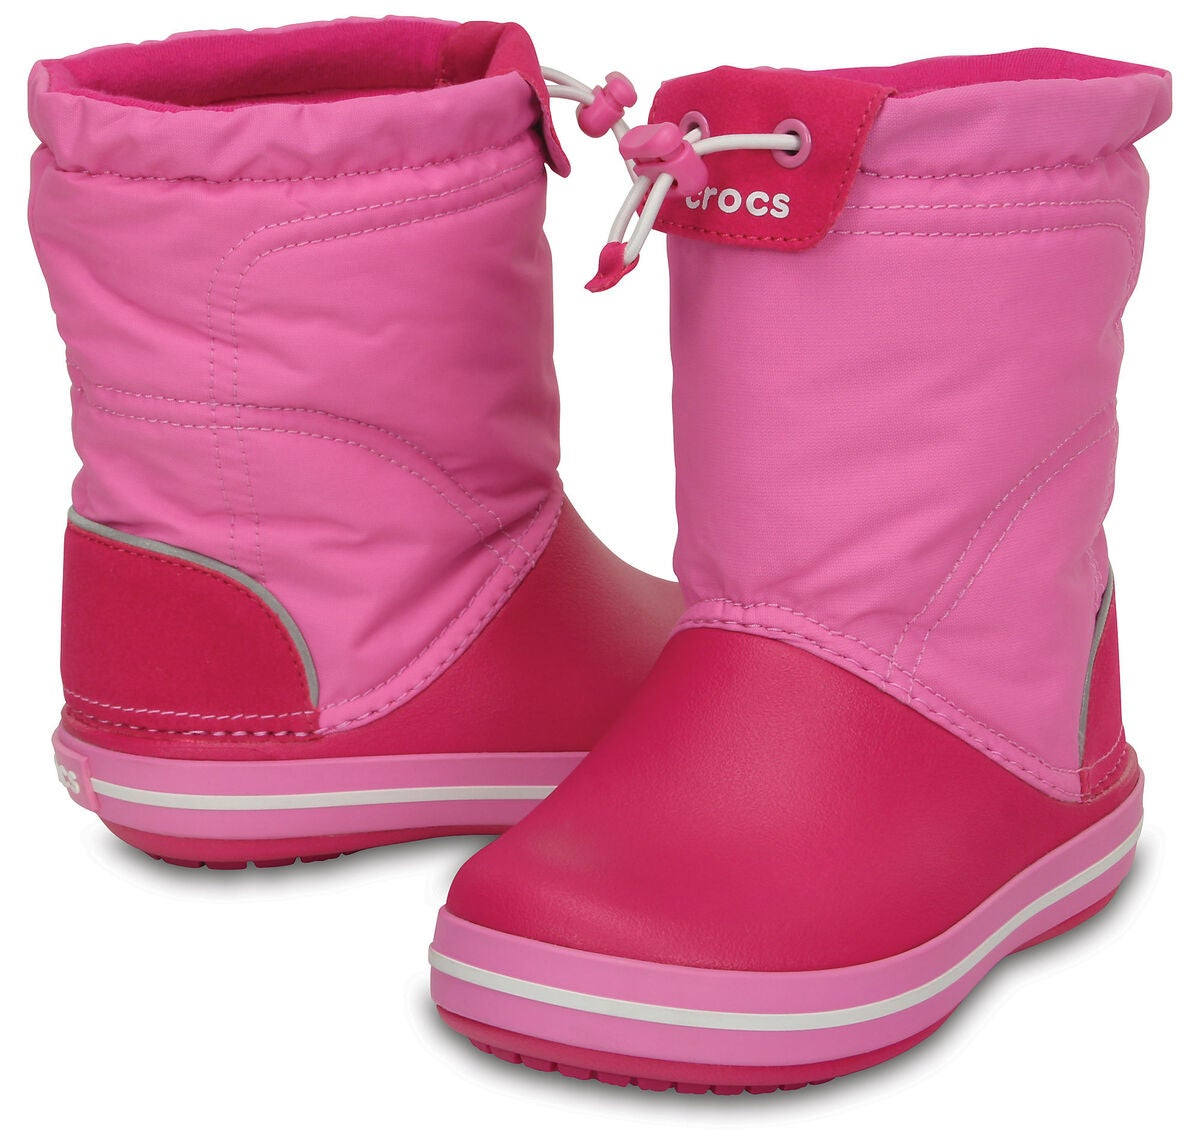 Köp Crocs Kids Crocband LodgePoint Boot, Candy PinkParty